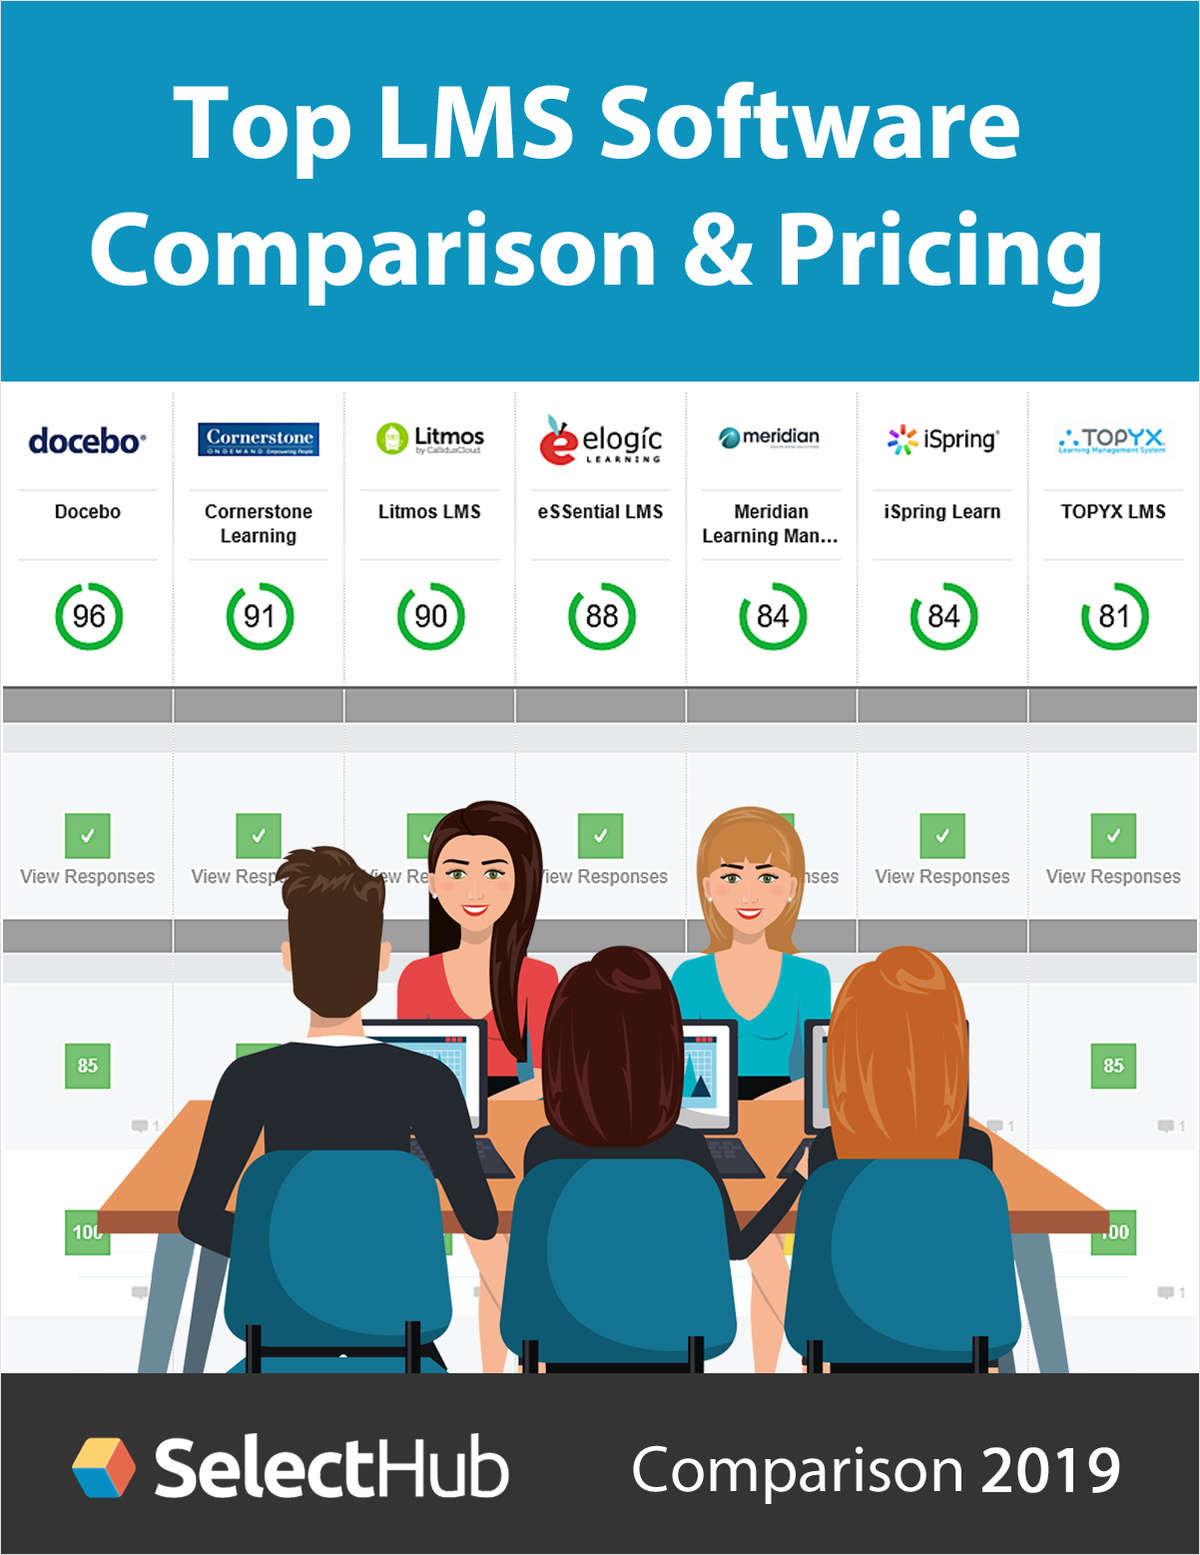 Top Learning Management Software (LMS) for 2019--Comparison & Pricing